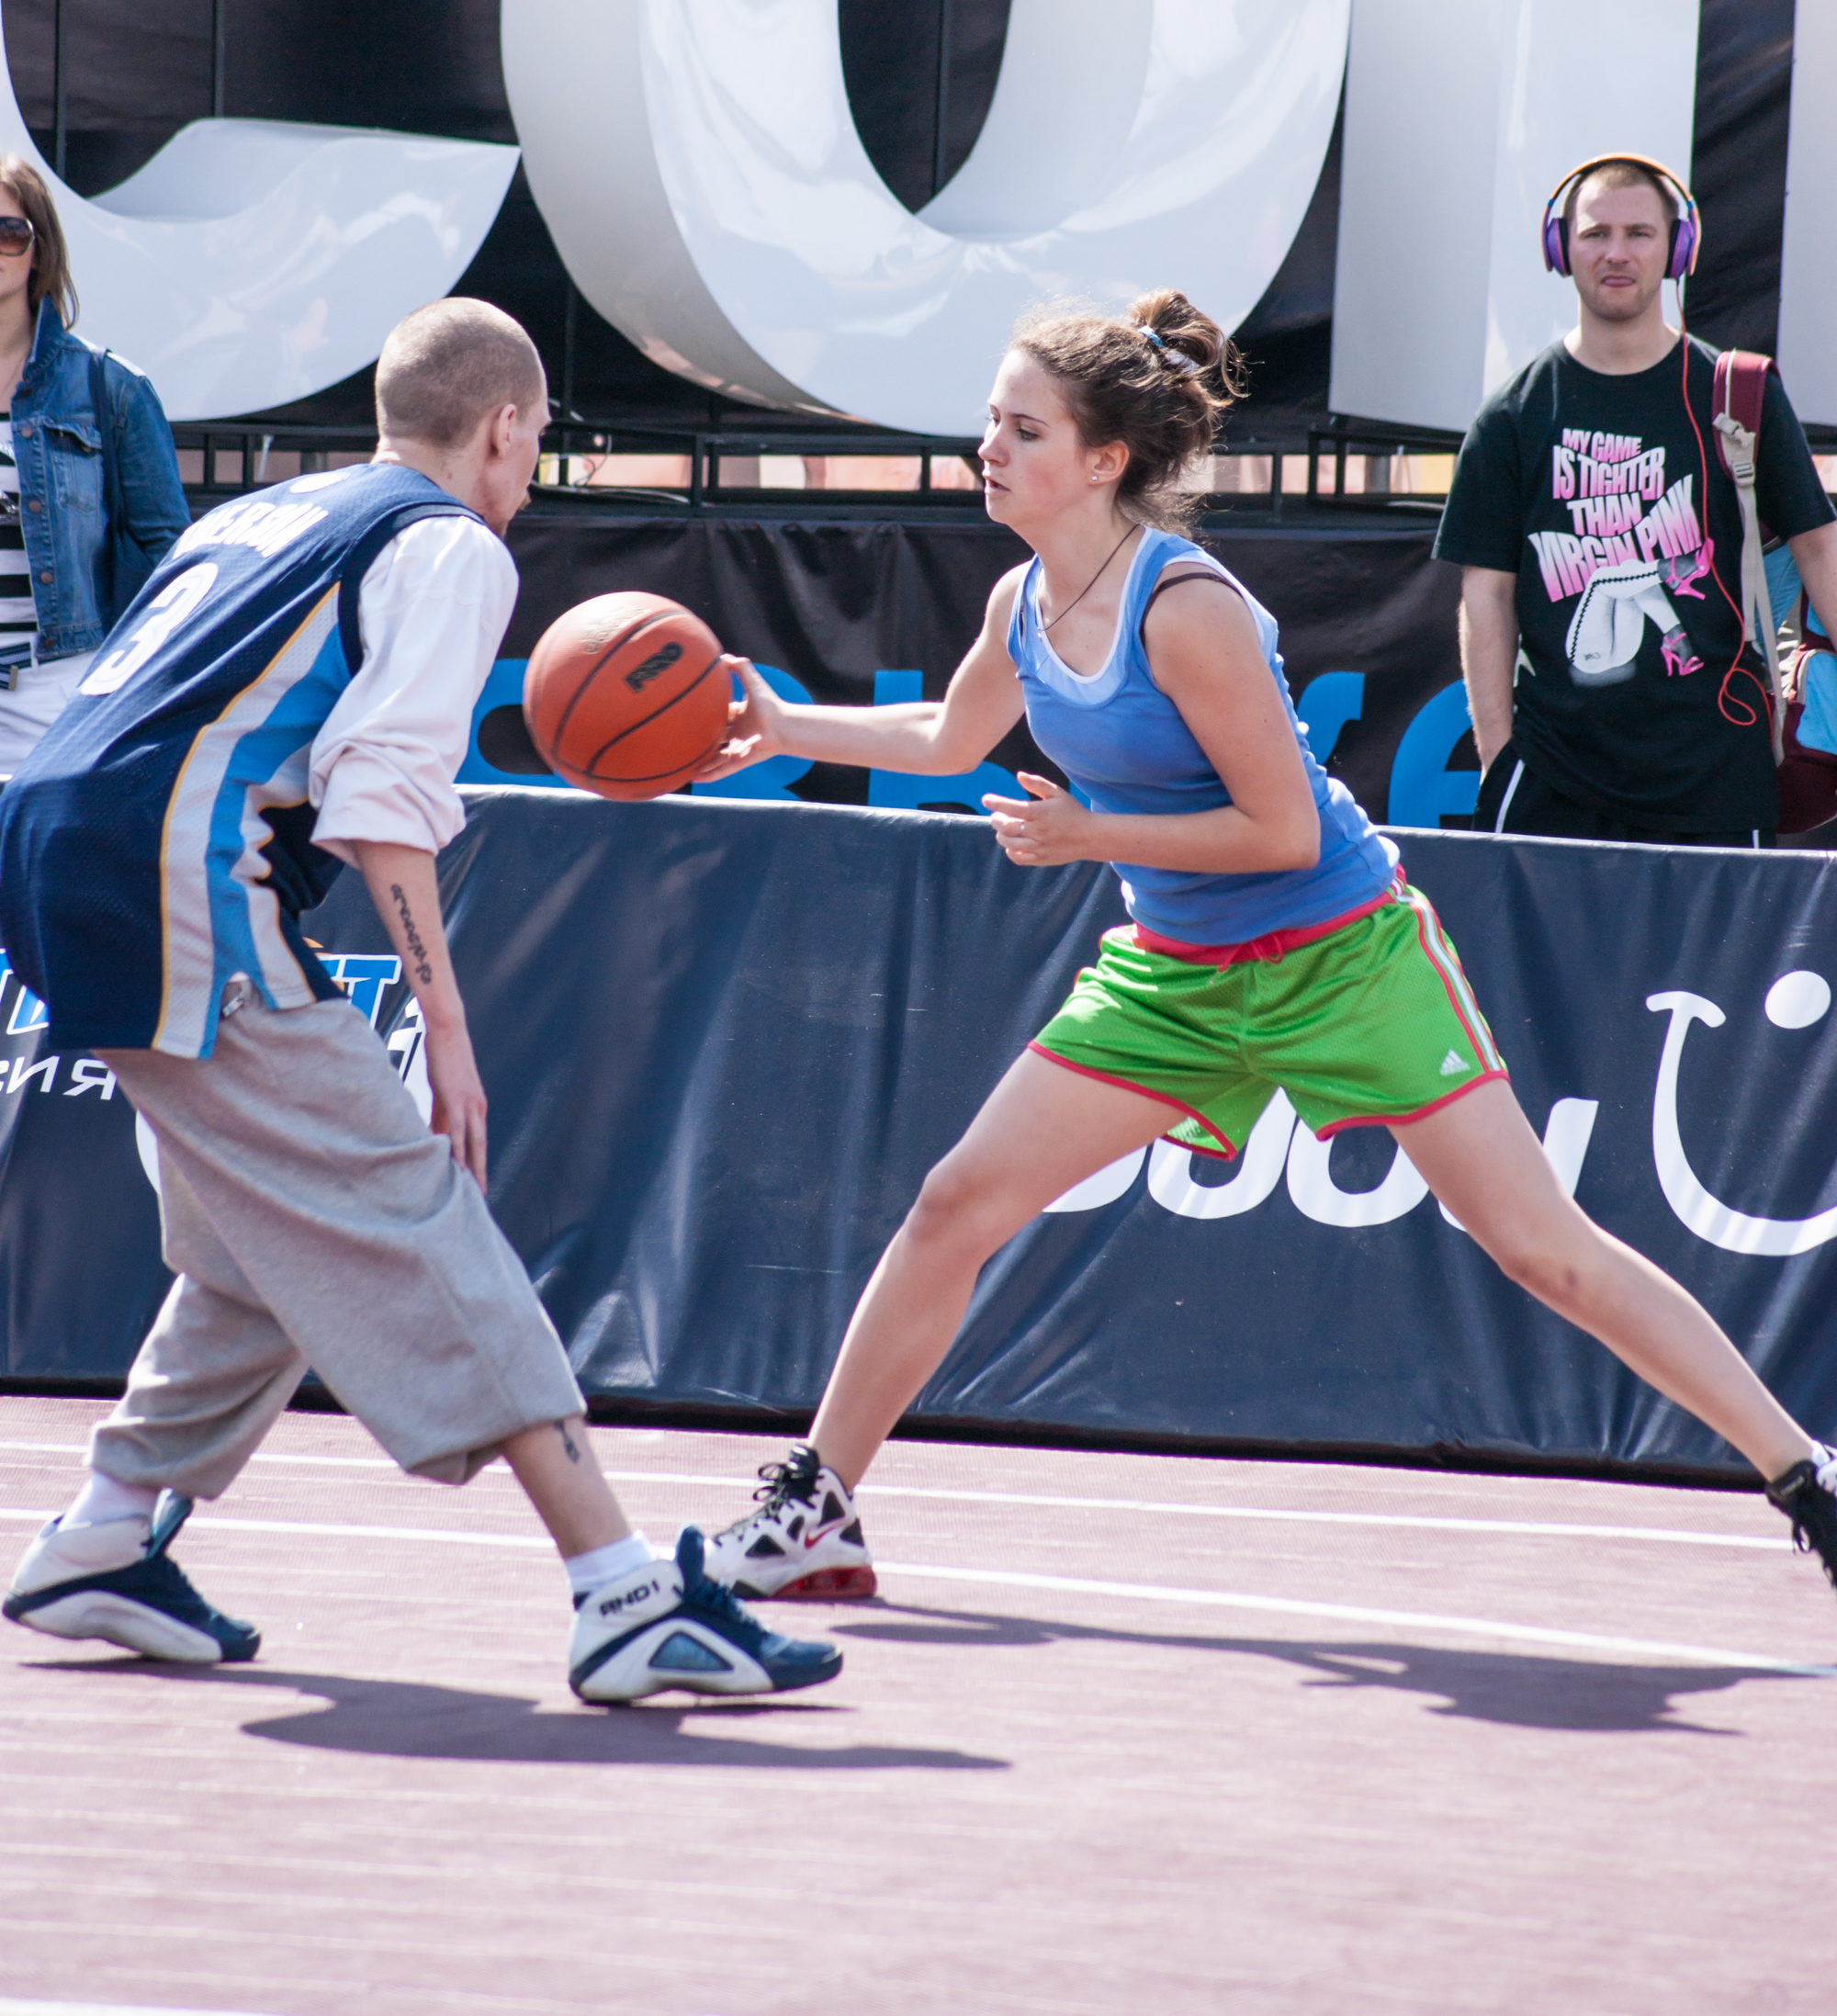 Street basketball in Moscow